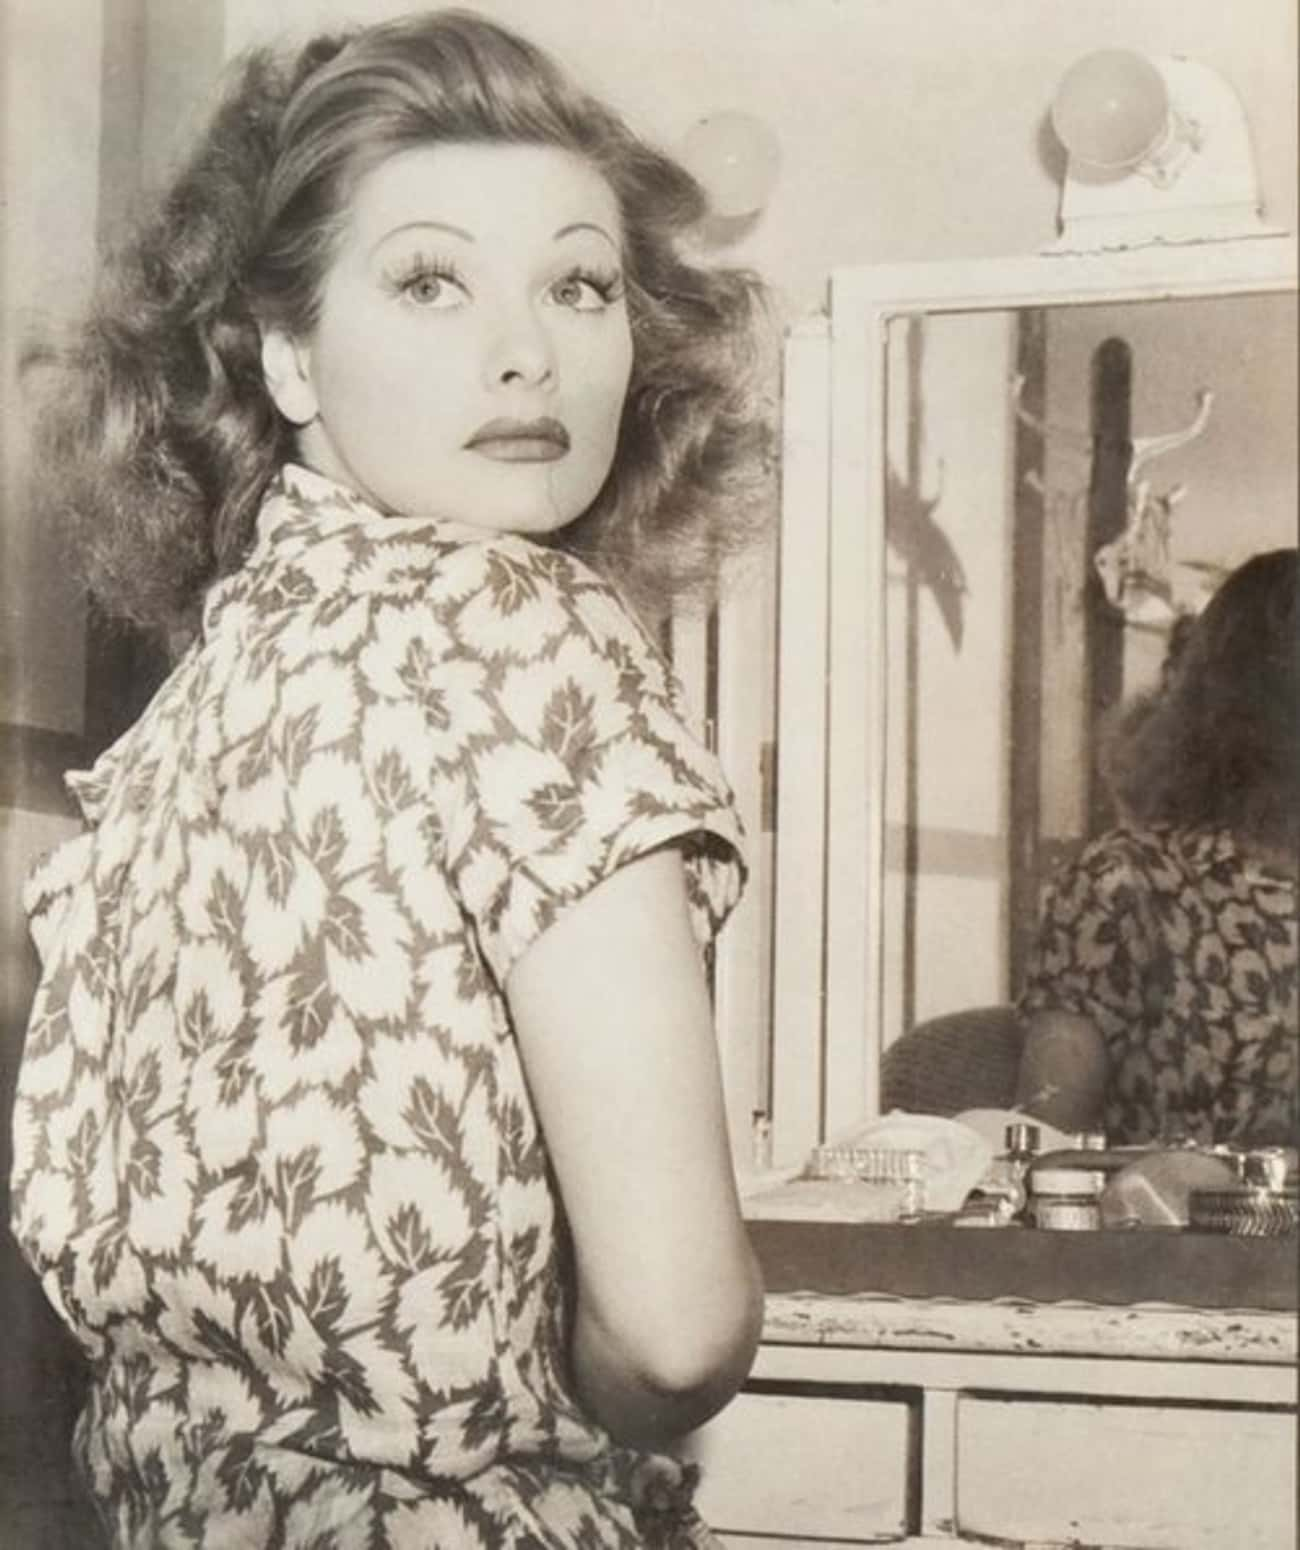 Young Lucille Ball in Patterne is listed (or ranked) 4 on the list 24 Pictures of Young Lucille Ball